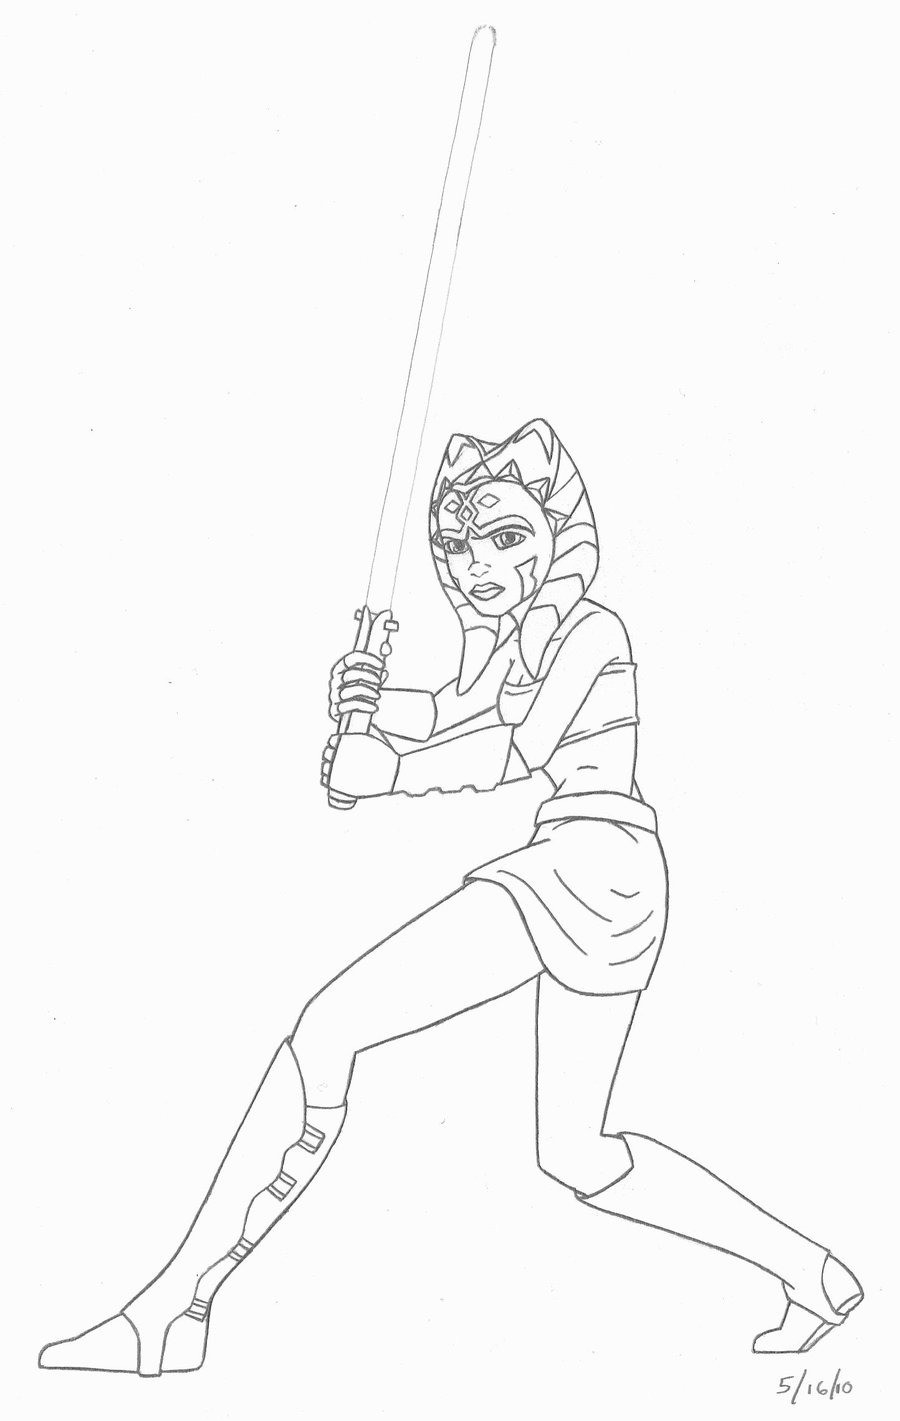 Ausmalbilder Star Wars the Clone Wars Einzigartig Star Wars Clone Wars Ahsoka Coloring Pages Luxus Ausmalbilder Star Stock